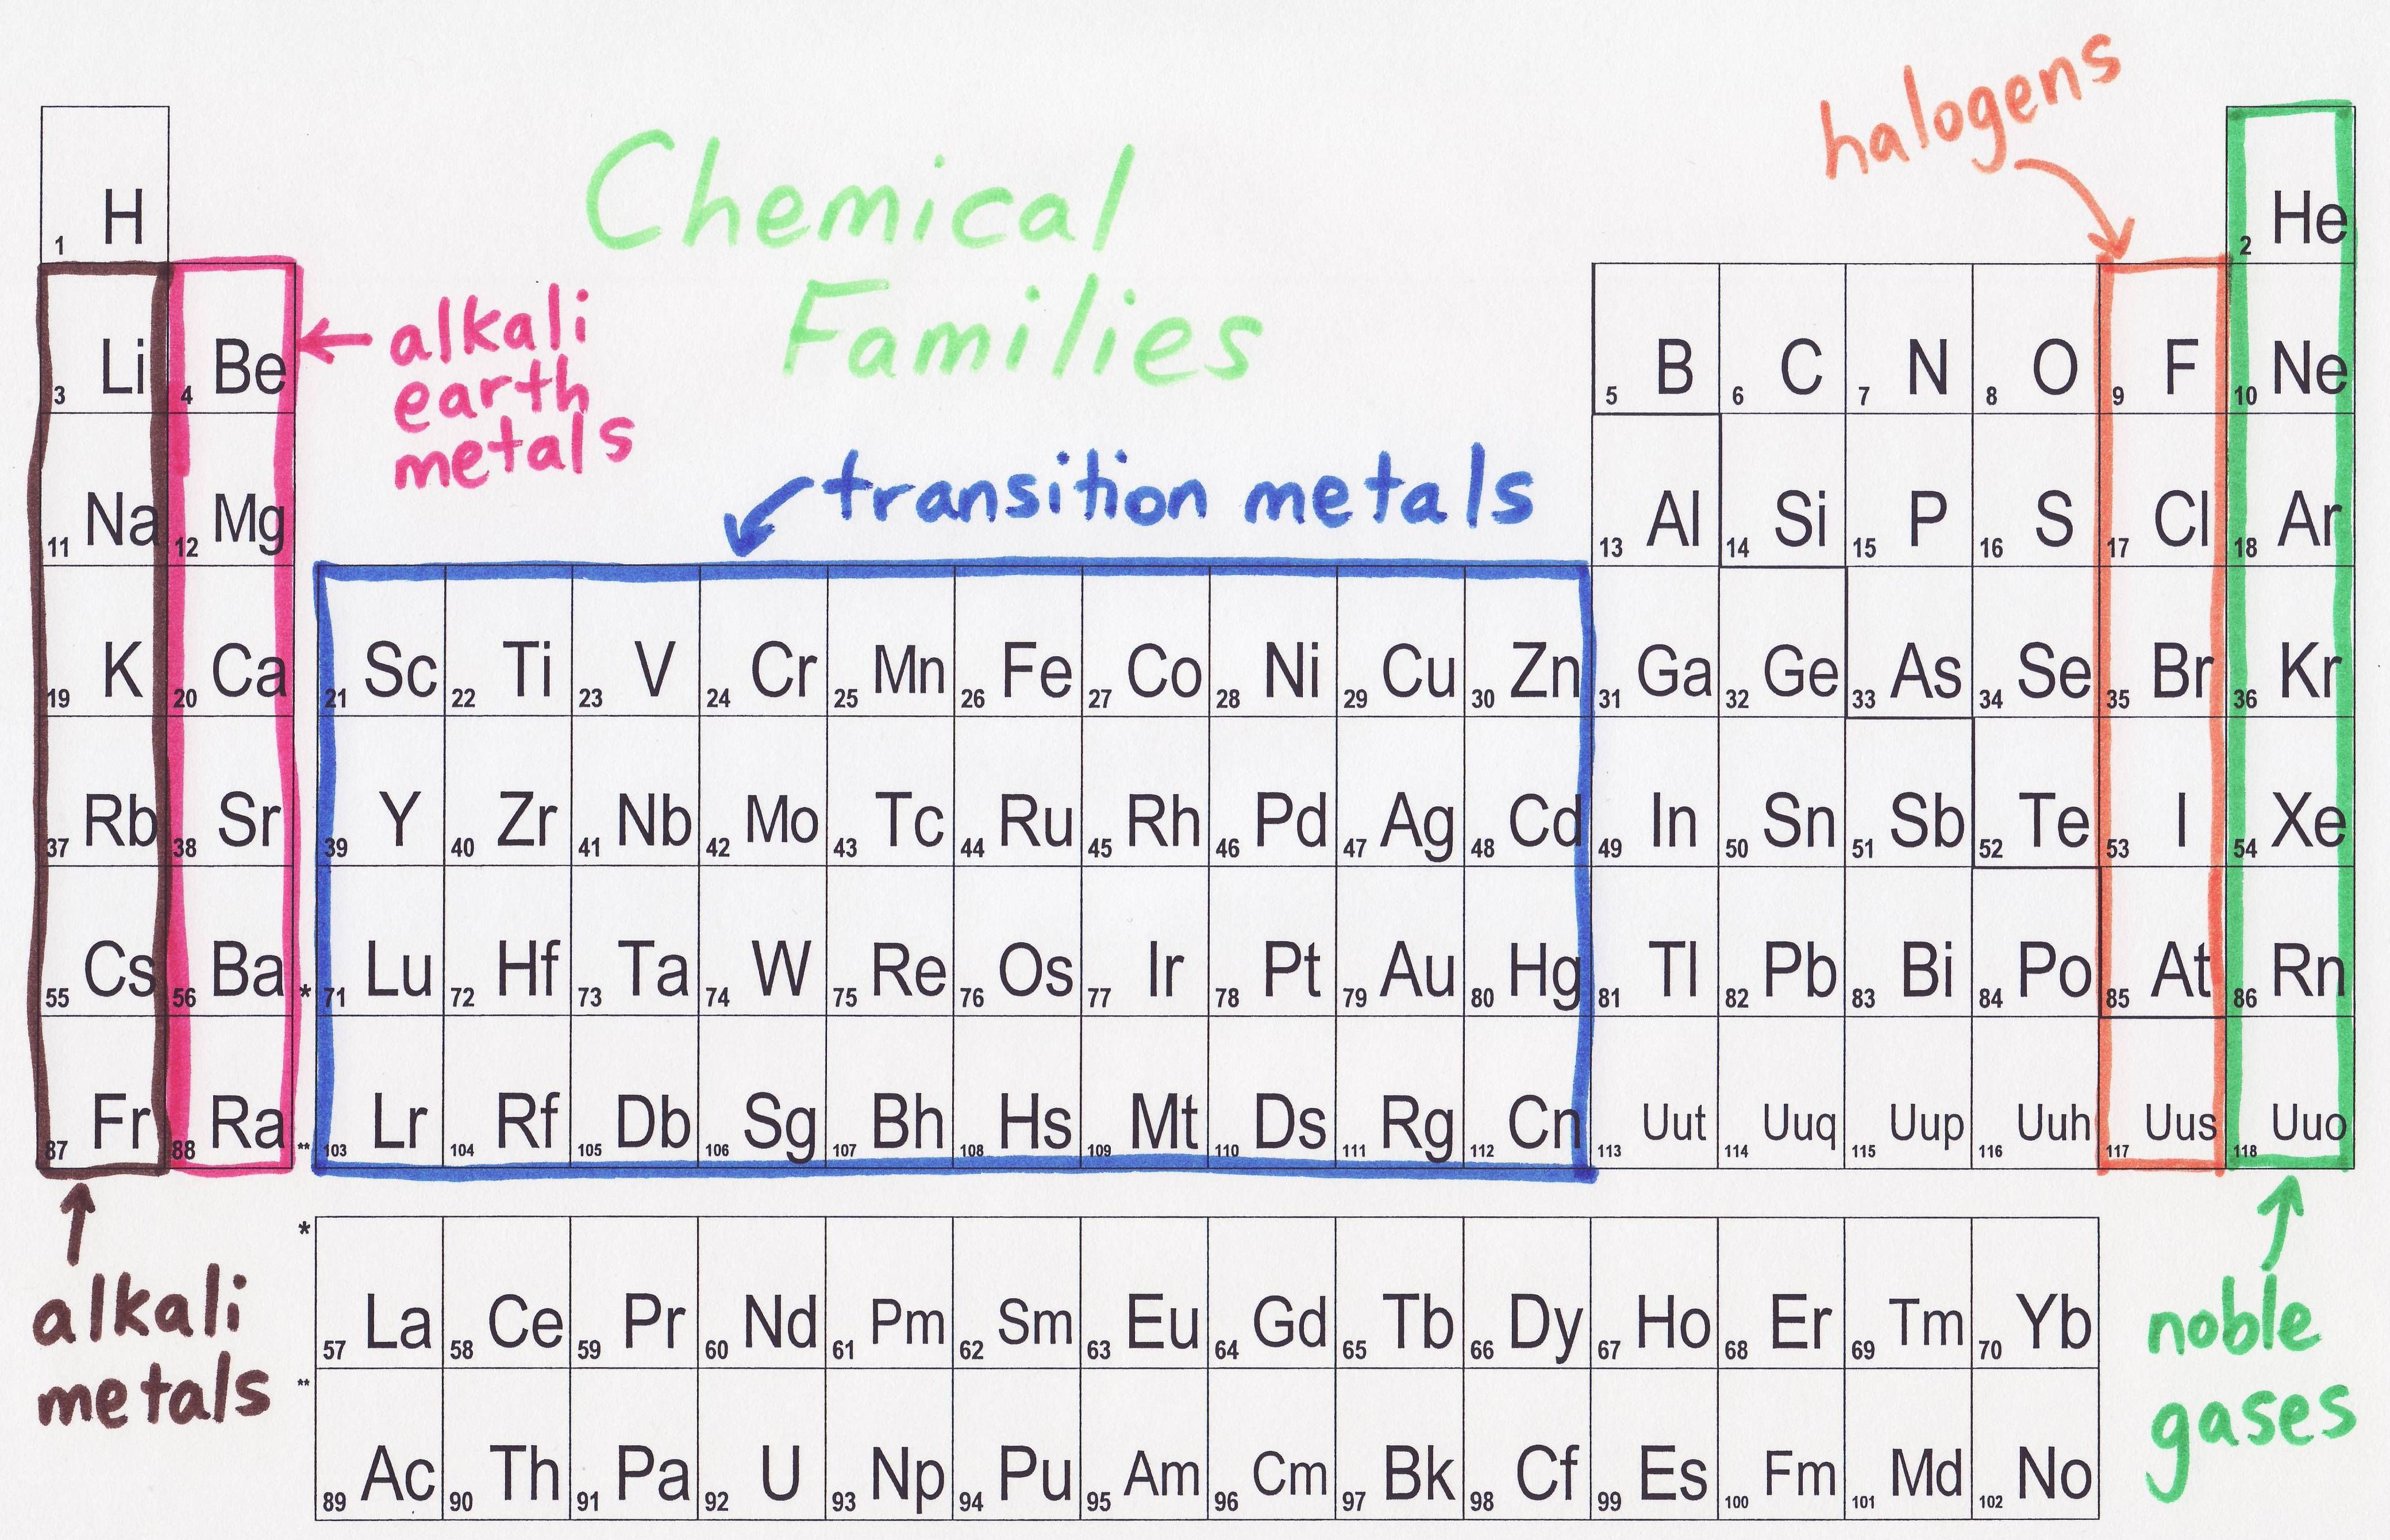 In This Section I Am Going To Talk About Chemical Families